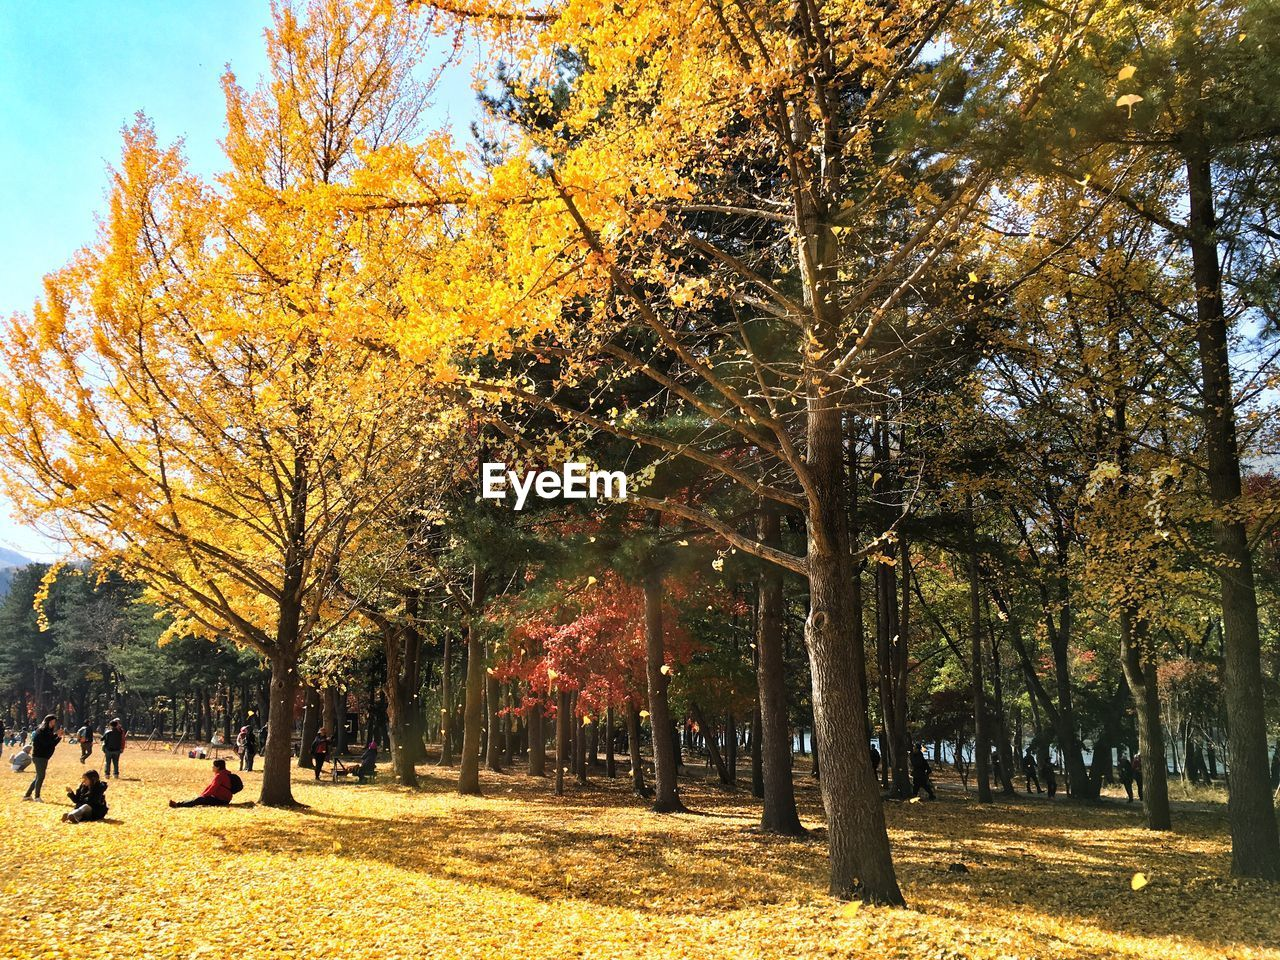 autumn, change, tree, leaf, nature, beauty in nature, tranquility, outdoors, growth, scenics, day, yellow, branch, real people, sky